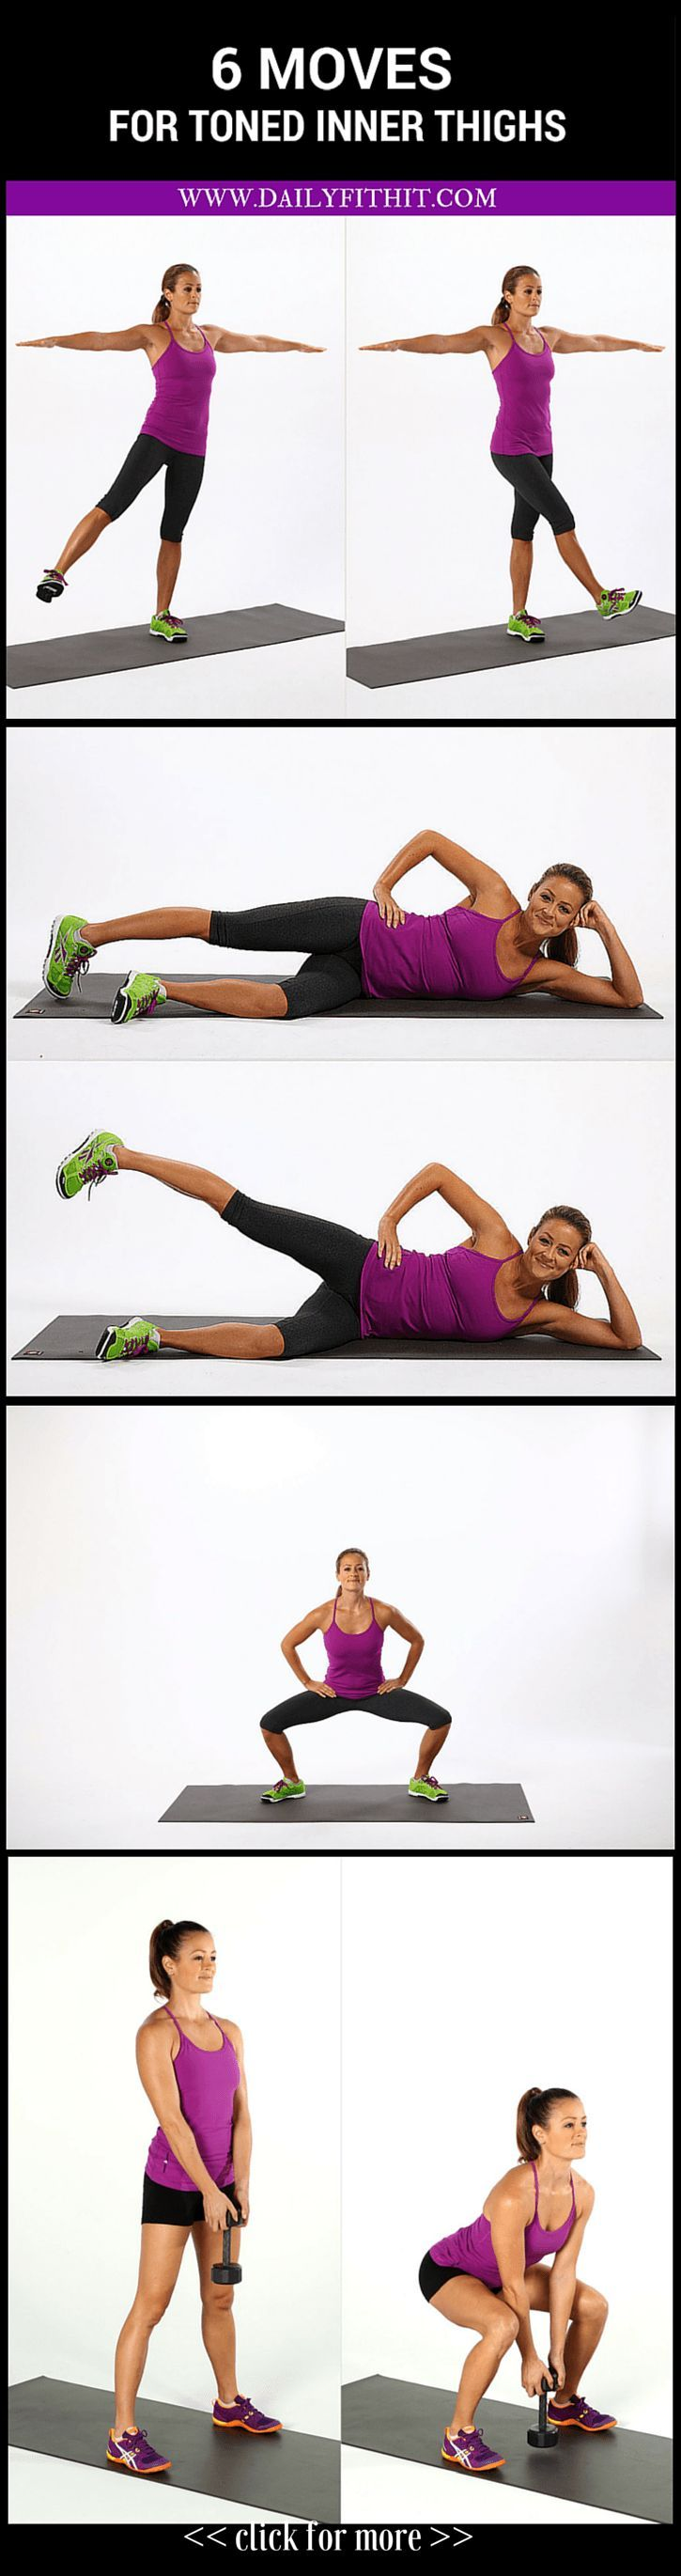 See more here ► https://www.youtube.com/watch?v=-pwmXYq0RQk Tags: best way to run to lose weight, what is the best way to lose weight fast, the best and quickest way to lose weight - 6 Moves for Terrifically Toned Inner Thighs #Workout #Fitness #WeightLoss Image Credits: popsugarfitness #exercise #diet #workout #fitness #health